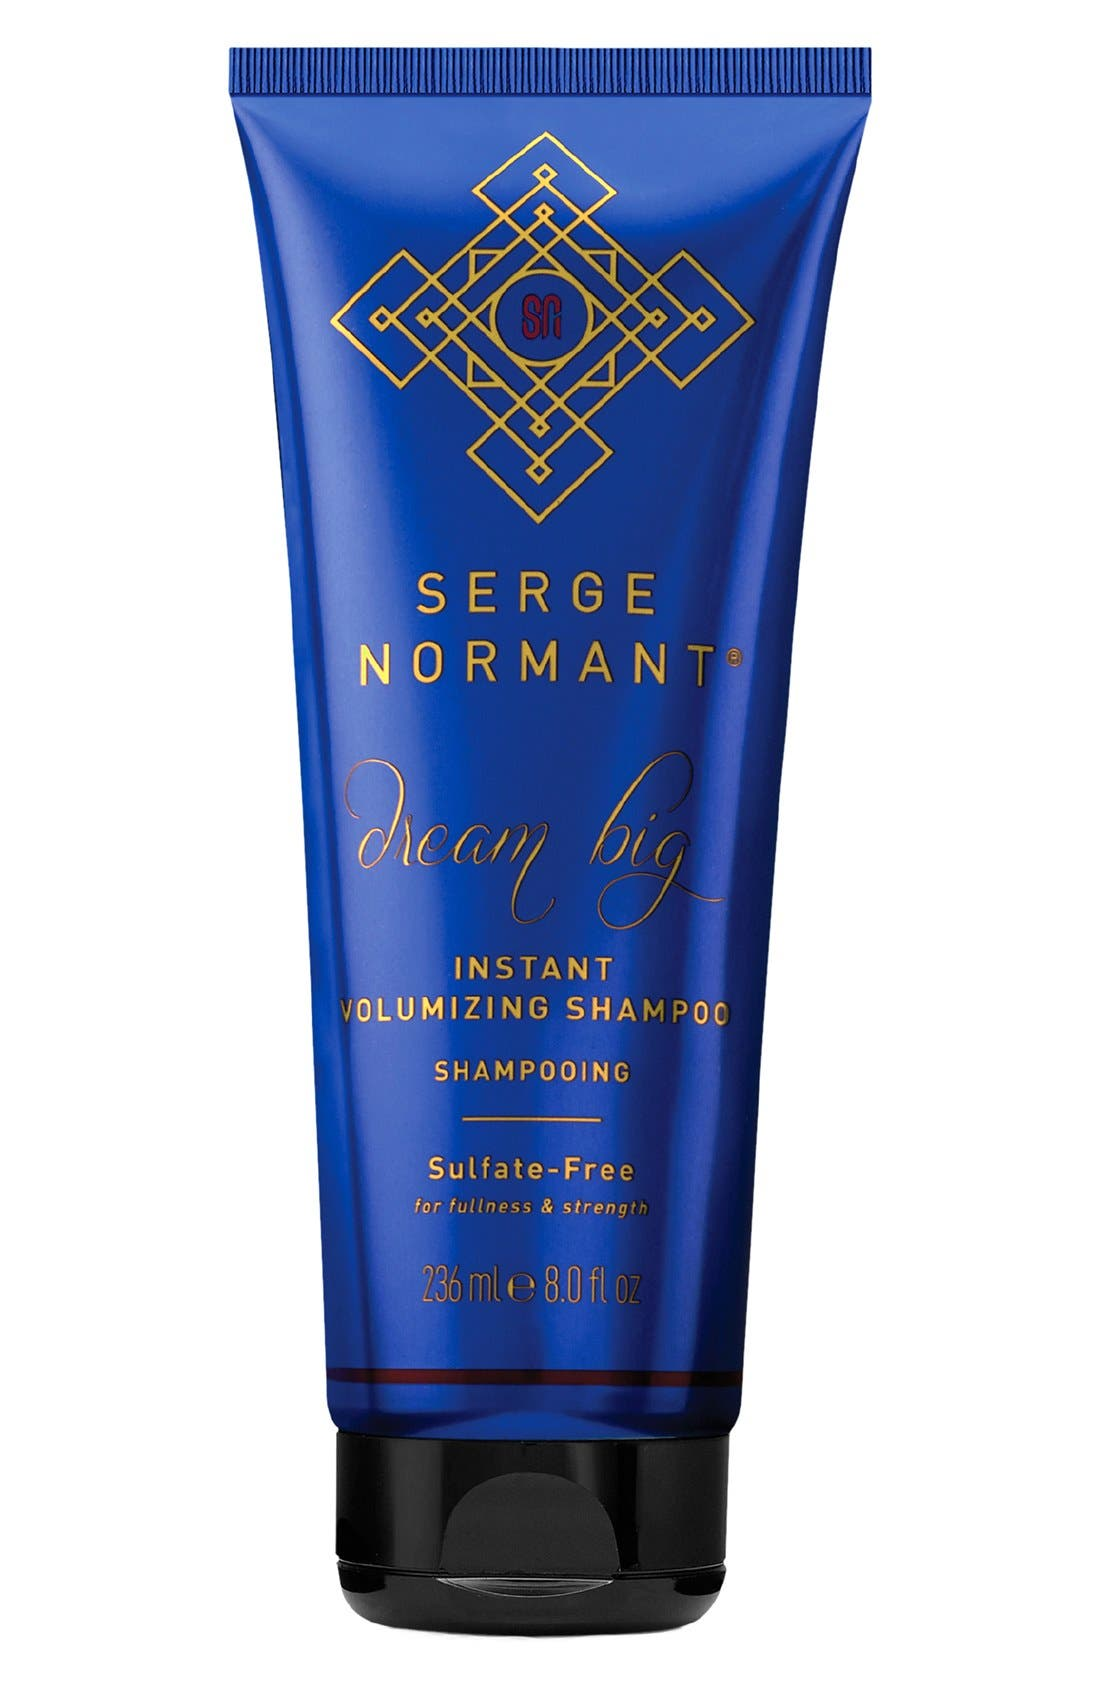 Serge Normant 'Dream Big' Instant Volumizing Shampoo